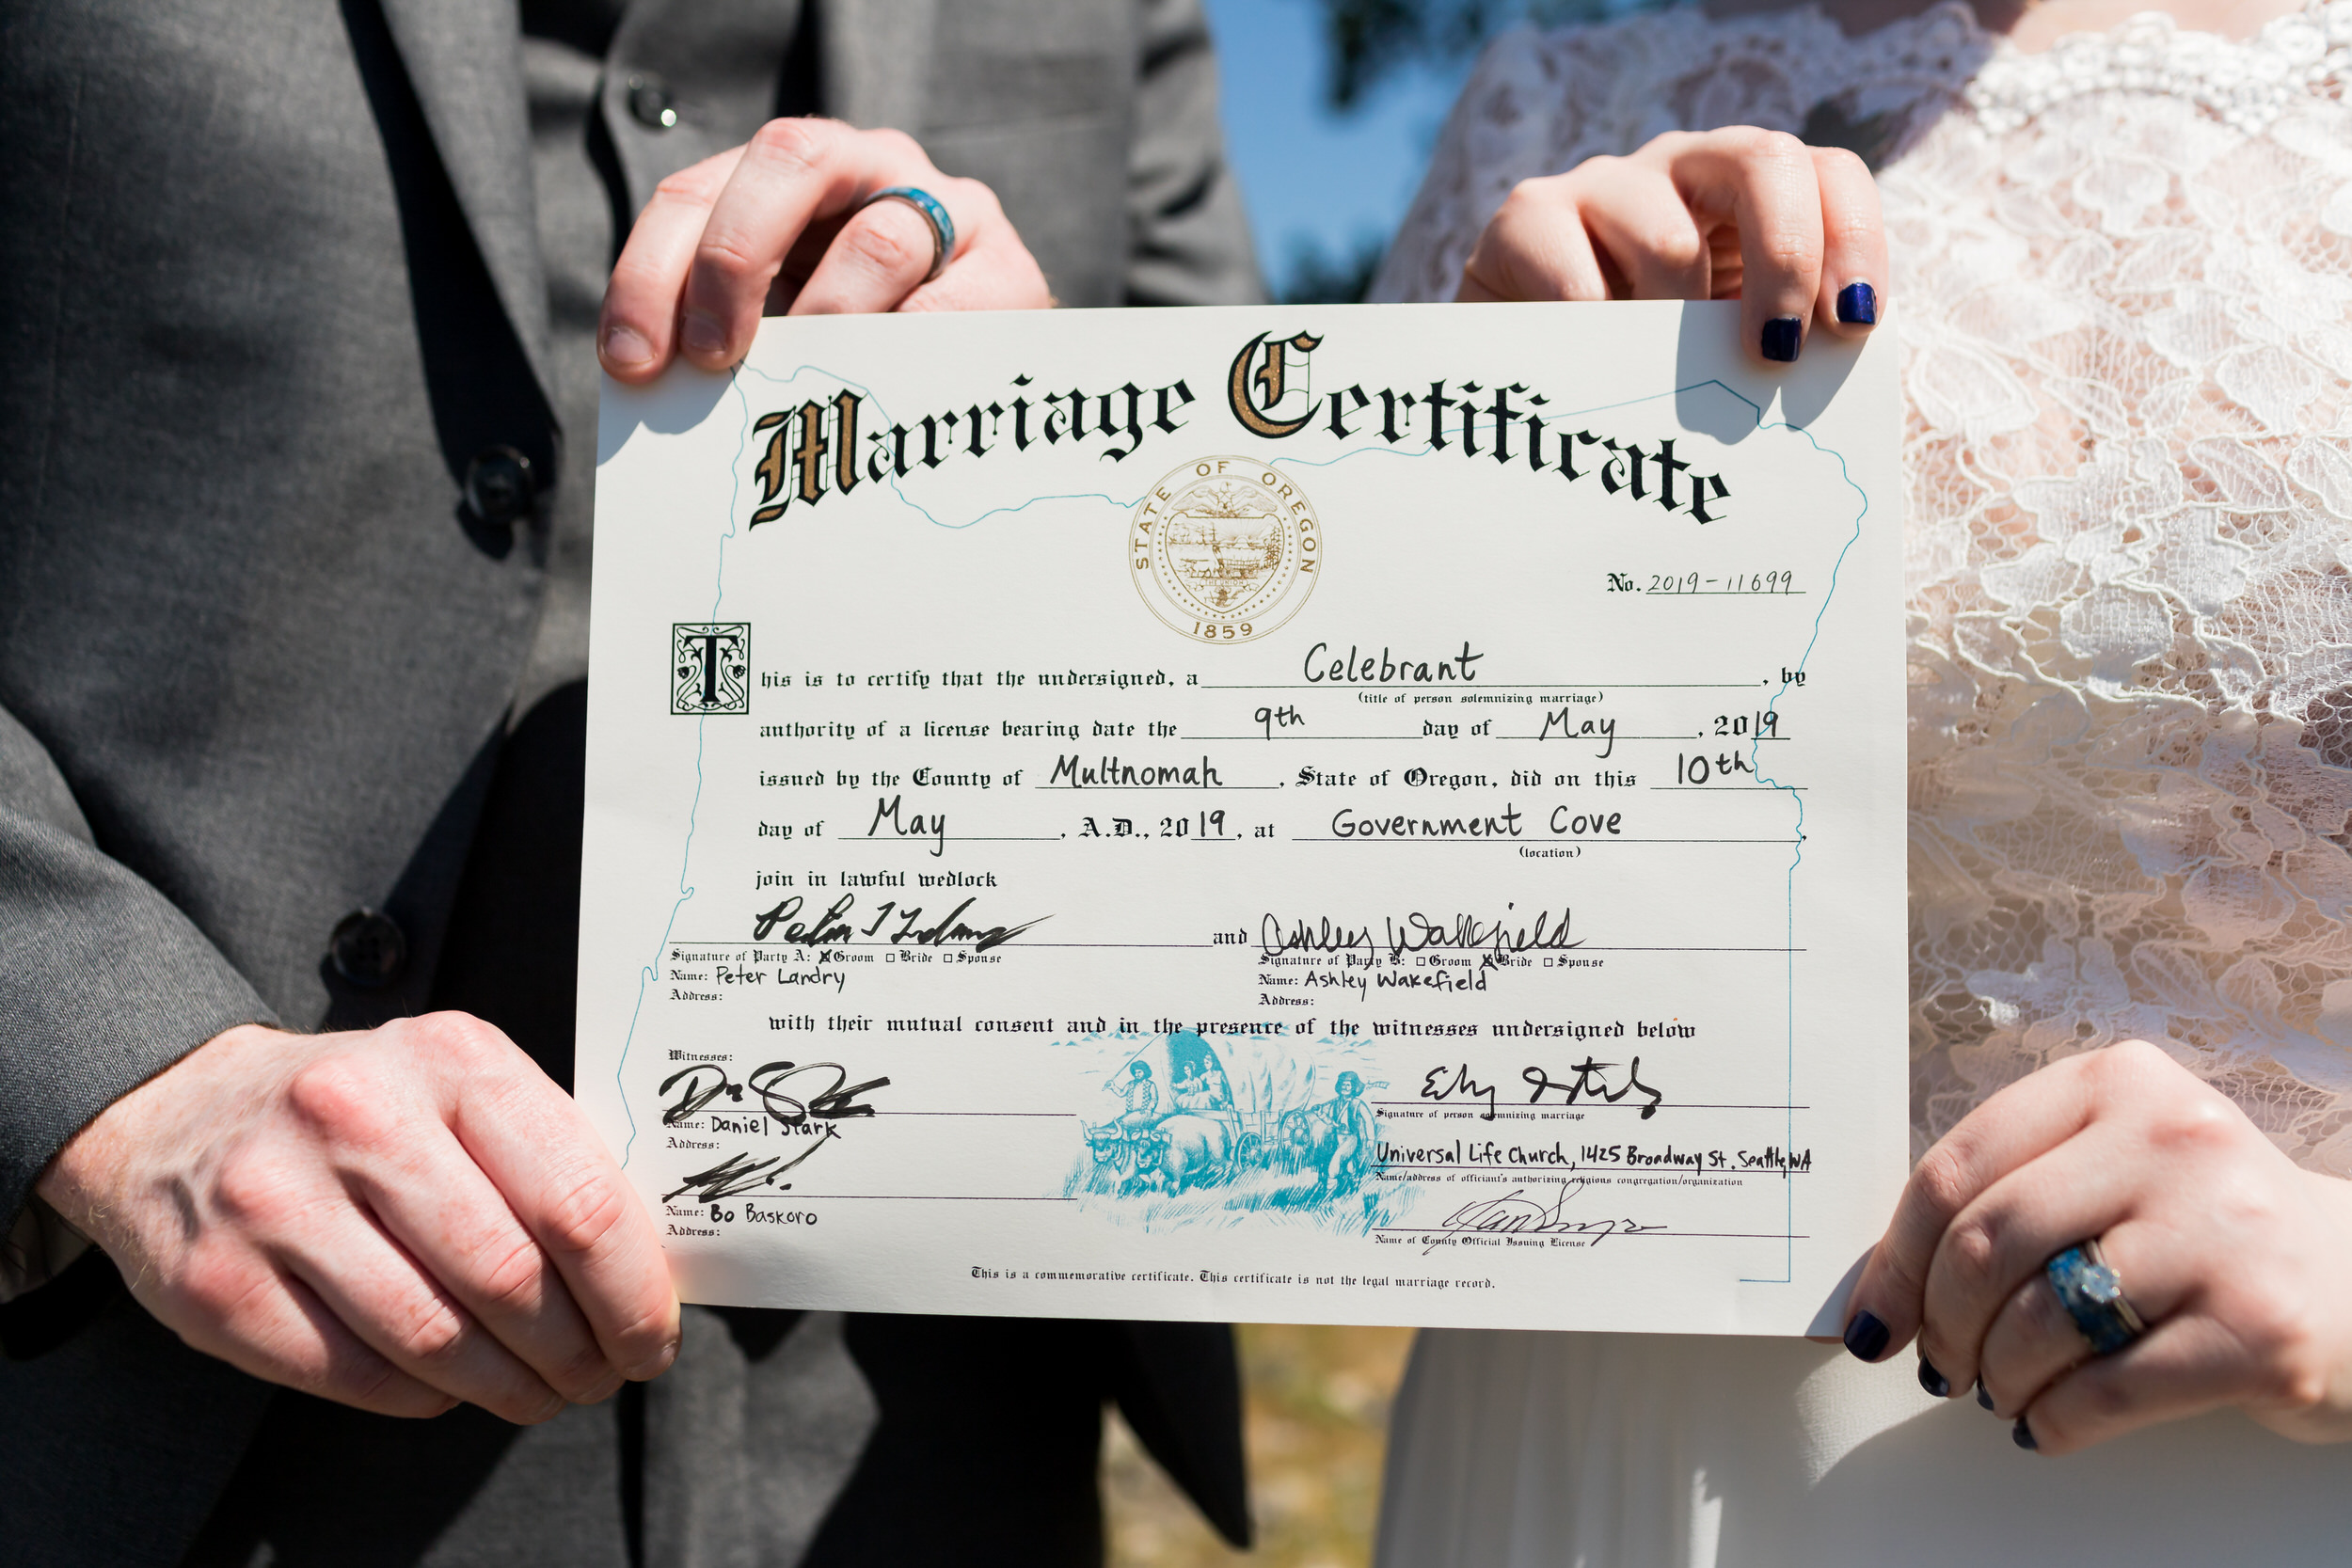 government_cove_elopement_009